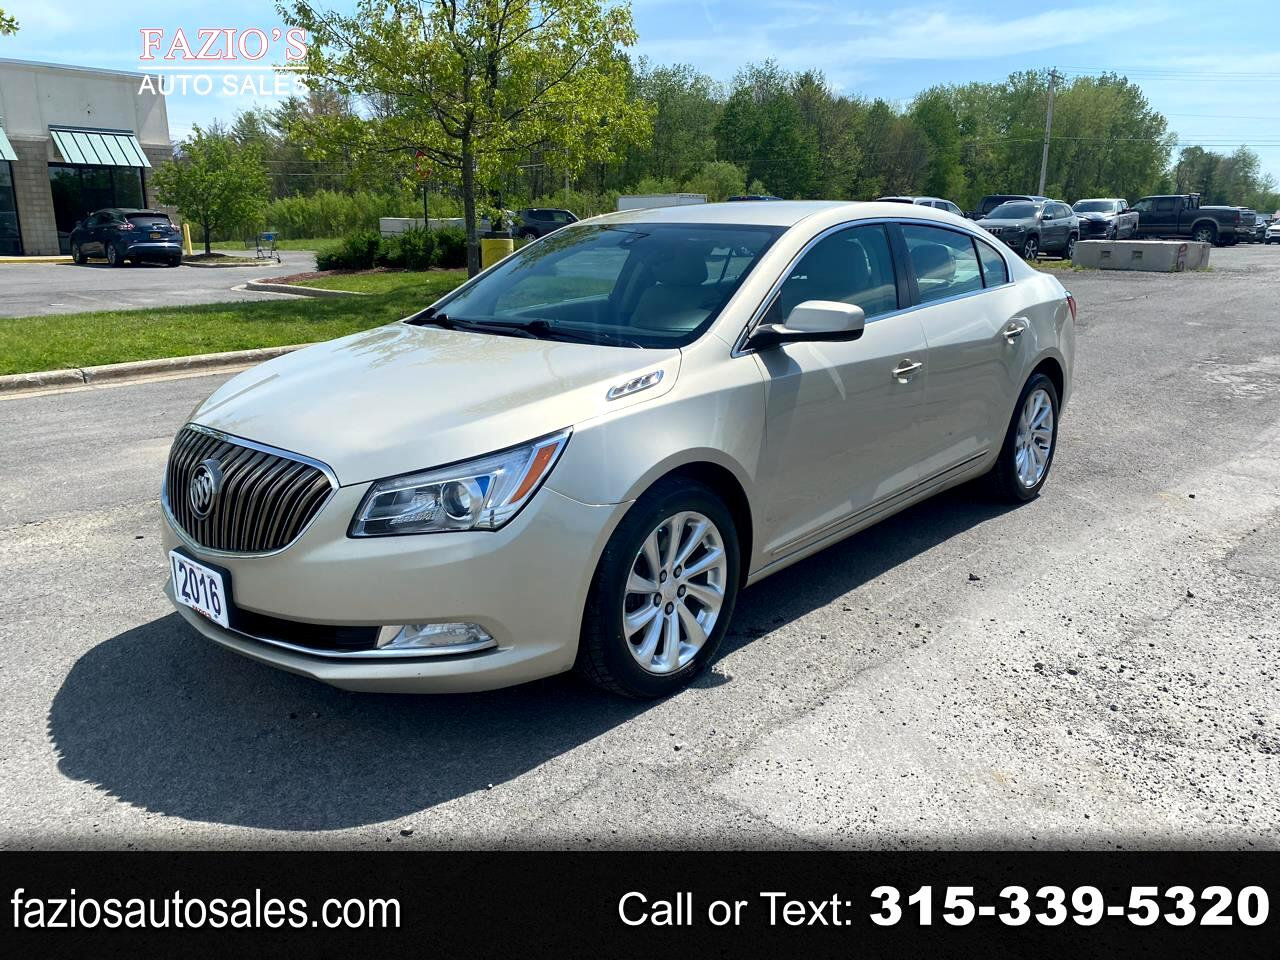 Buick LaCrosse 4dr Sdn Base FWD 2016